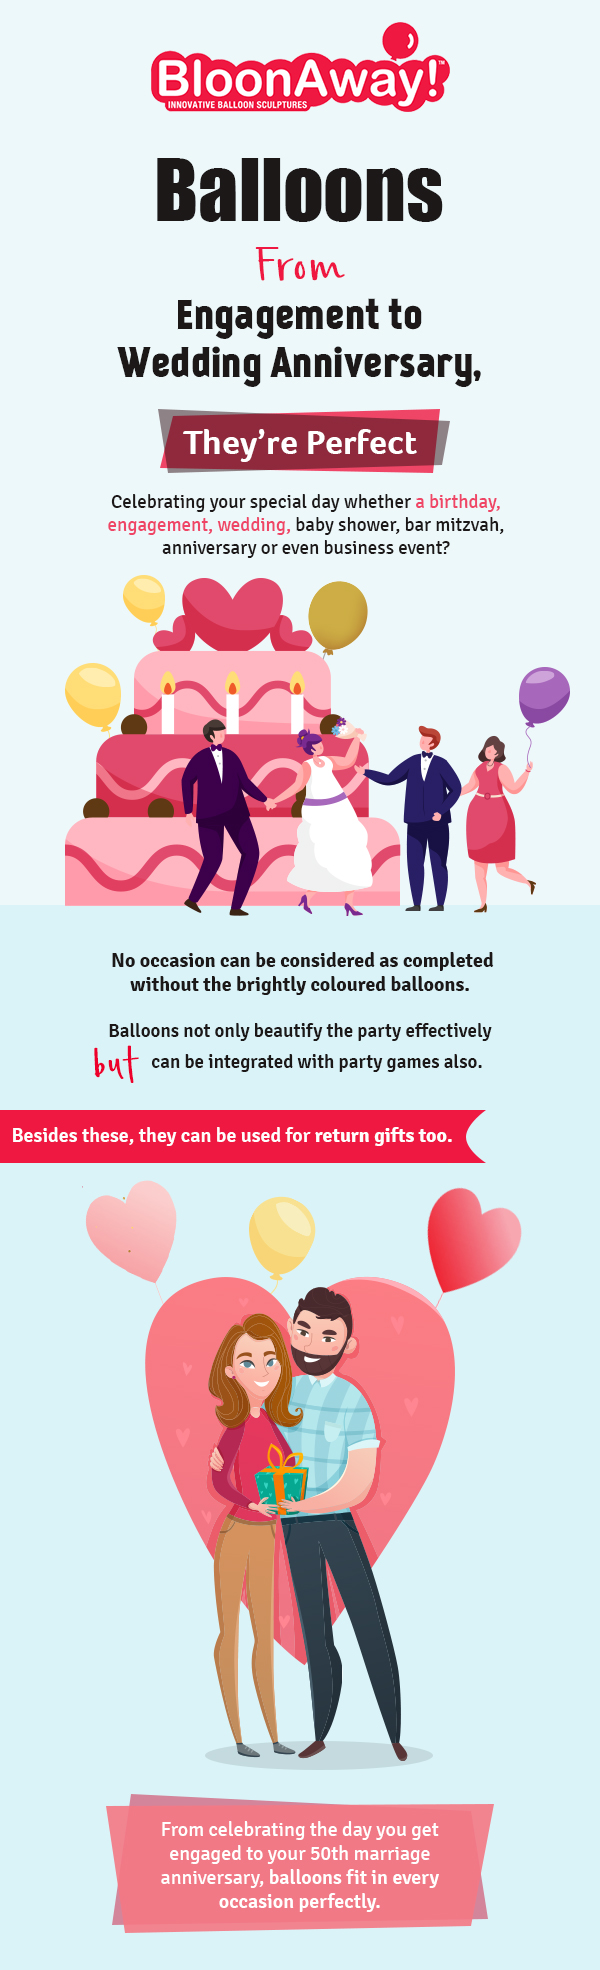 Balloons – From Engagement to Wedding Anniversary, They're Perfect